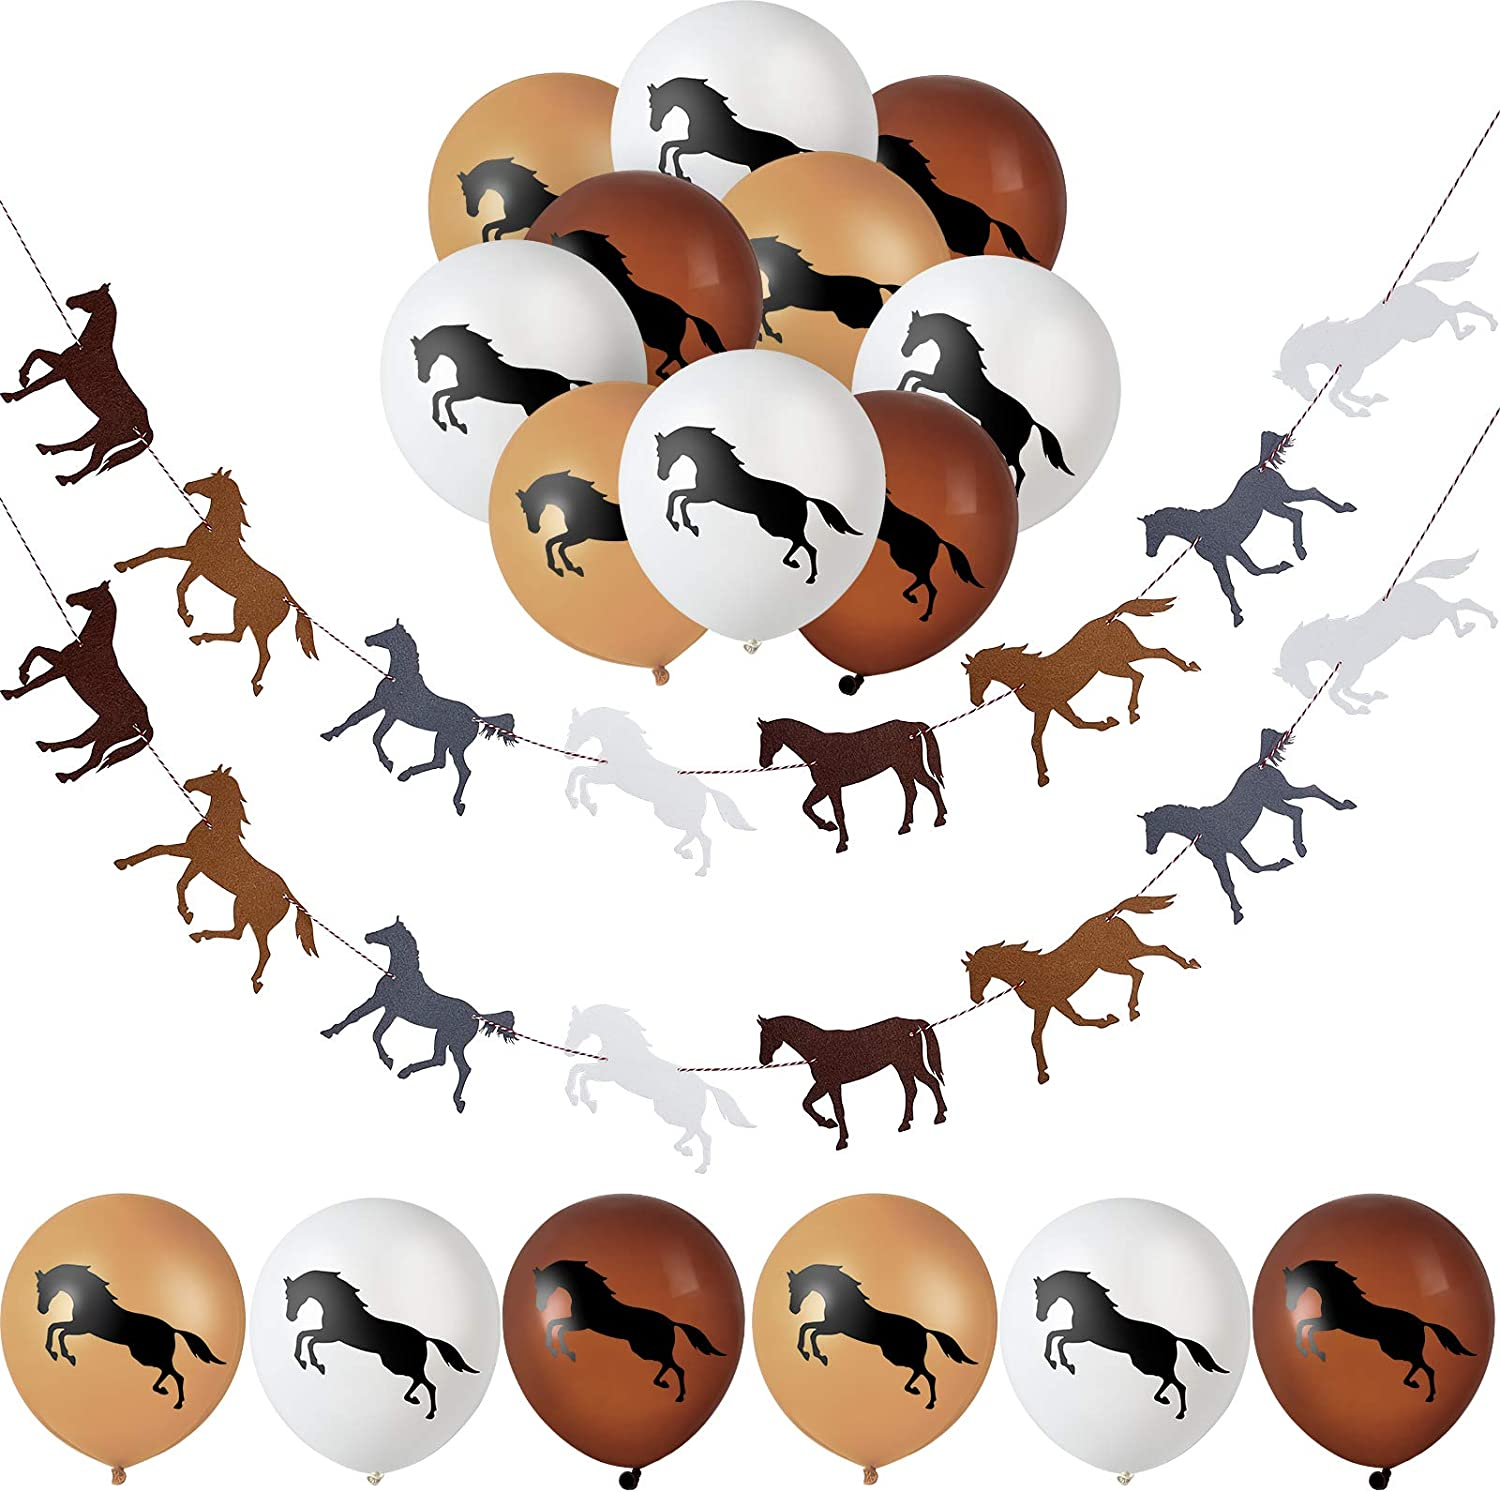 Horse Garland Banner Horse Latex Balloons Horse Racing Streamer Horse Party Garland for Horse Racing Birthday Wedding Party Decoration, Pre-Assembled